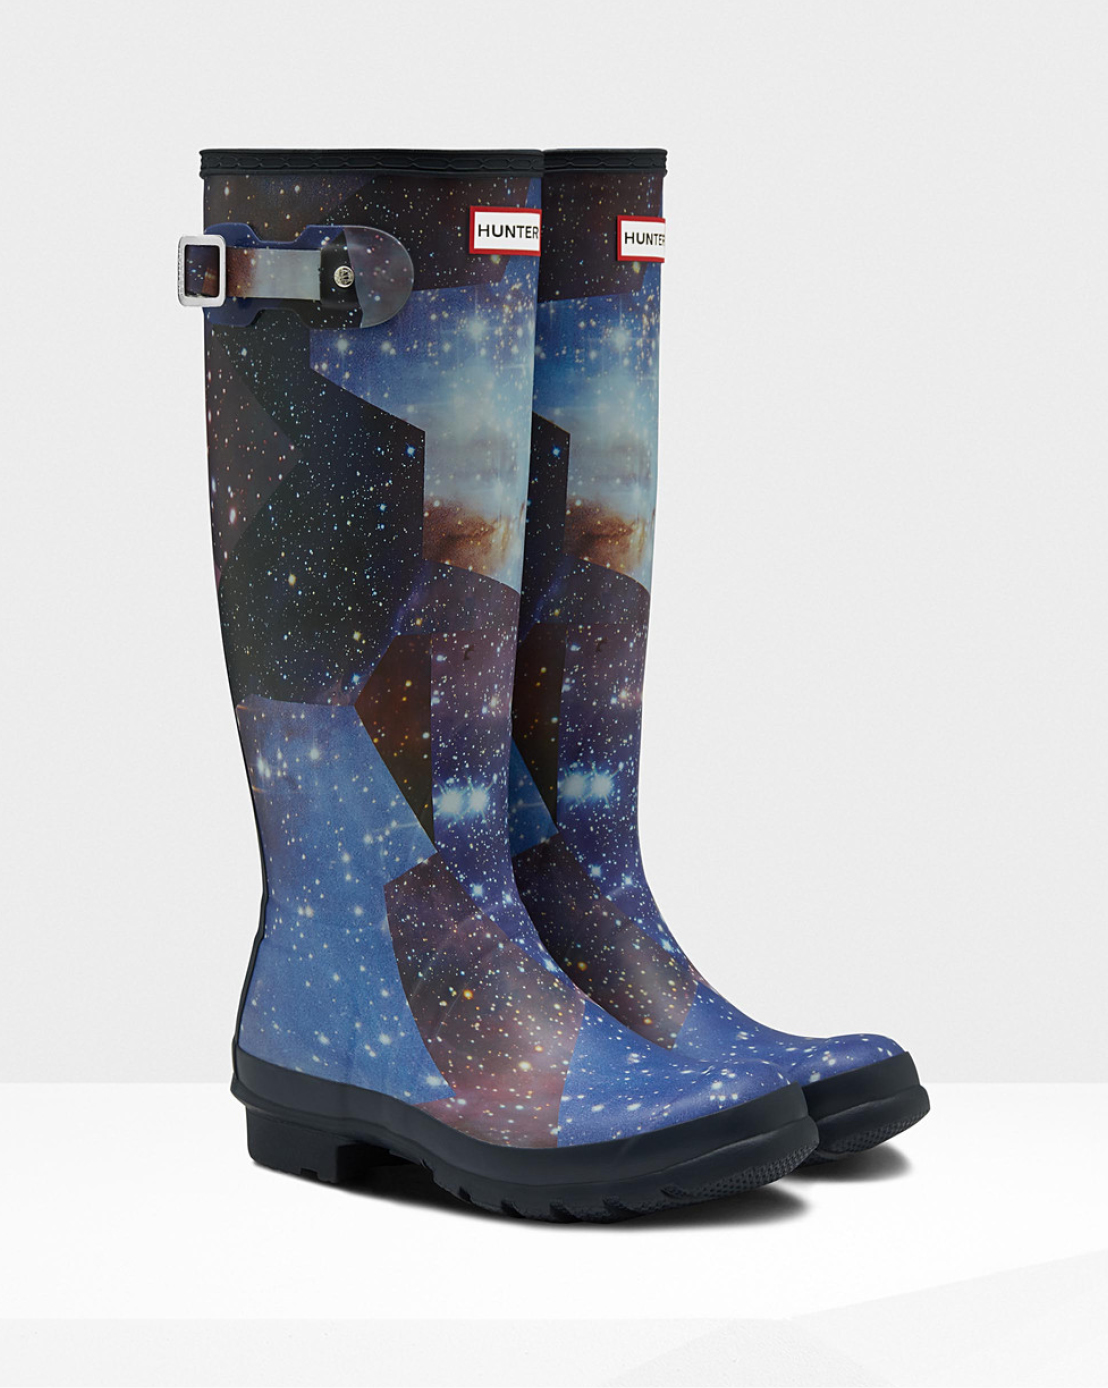 WOMEN'S ORIGINAL TALL SPACE CAMO RAIN BOOTS